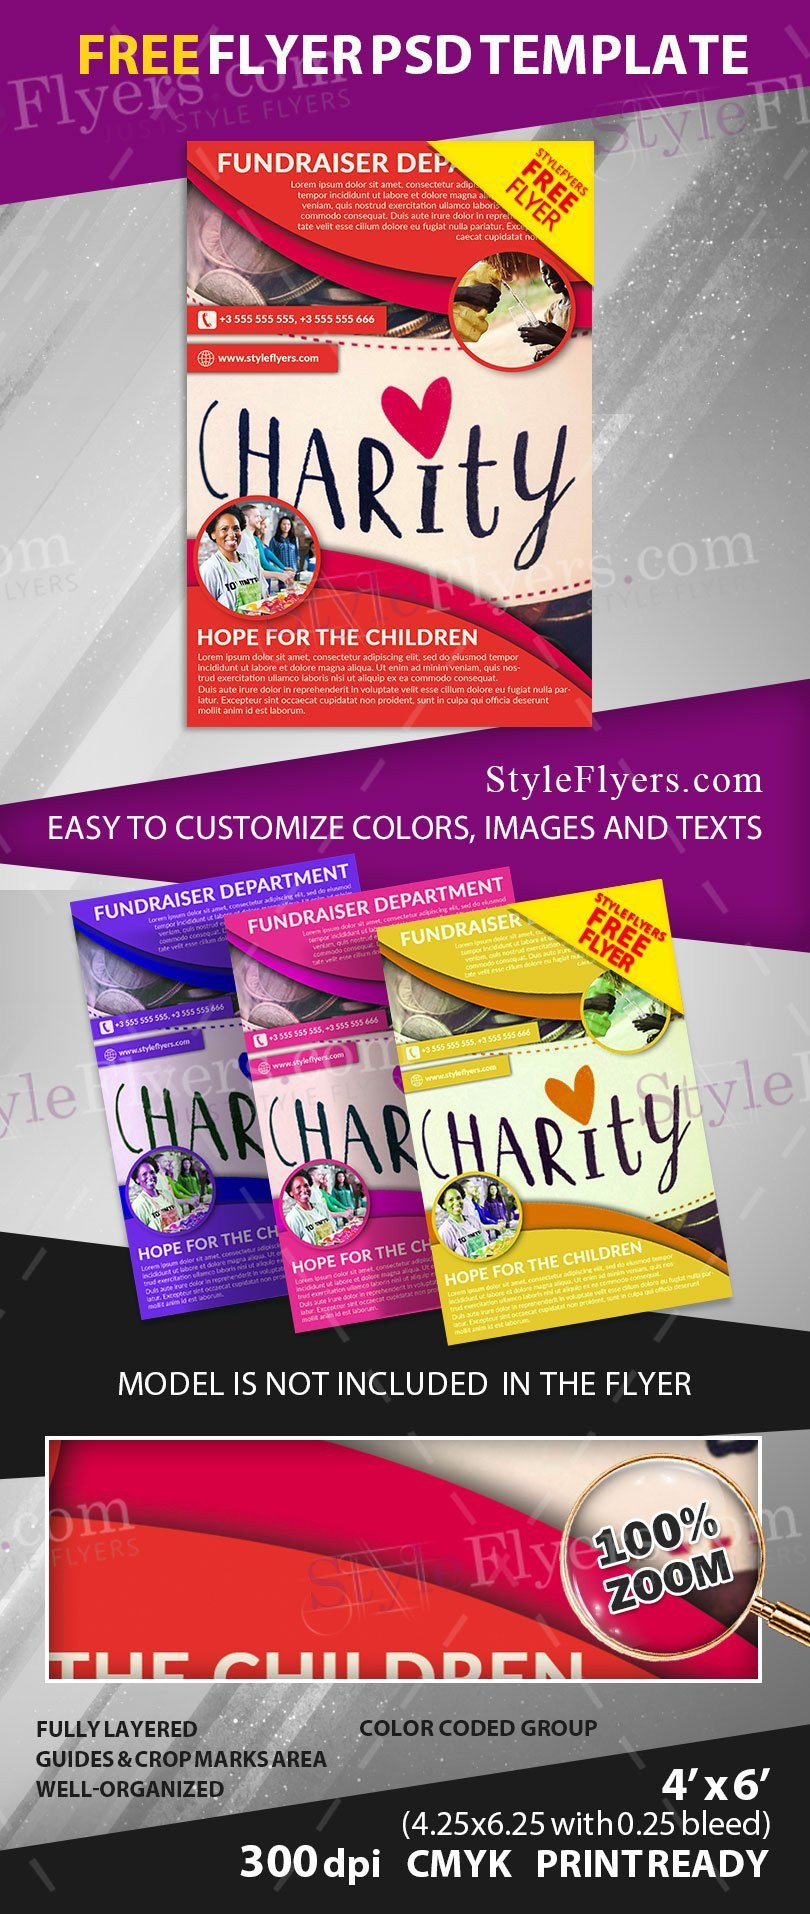 Free Fundraiser Flyer Templates Fundraiser Free Psd Flyer Template Free Download